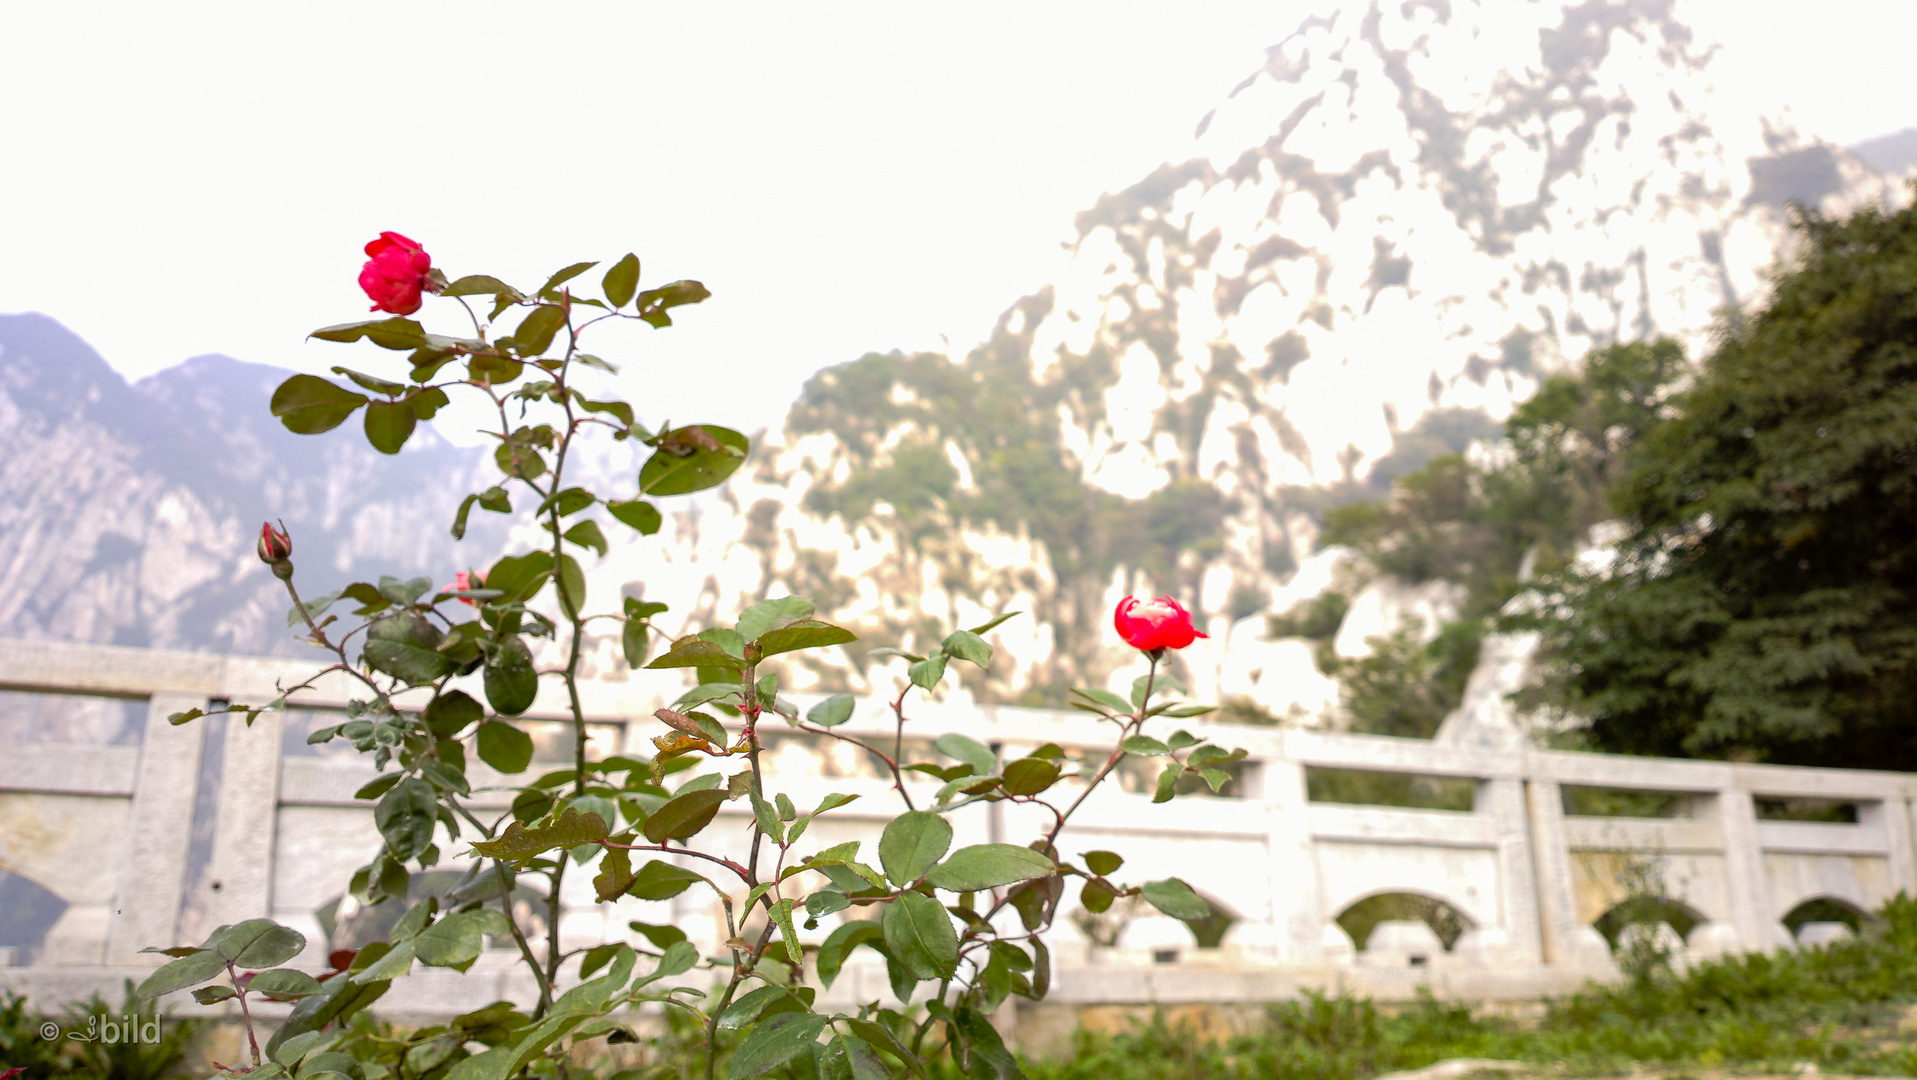 roses on songshan mountain